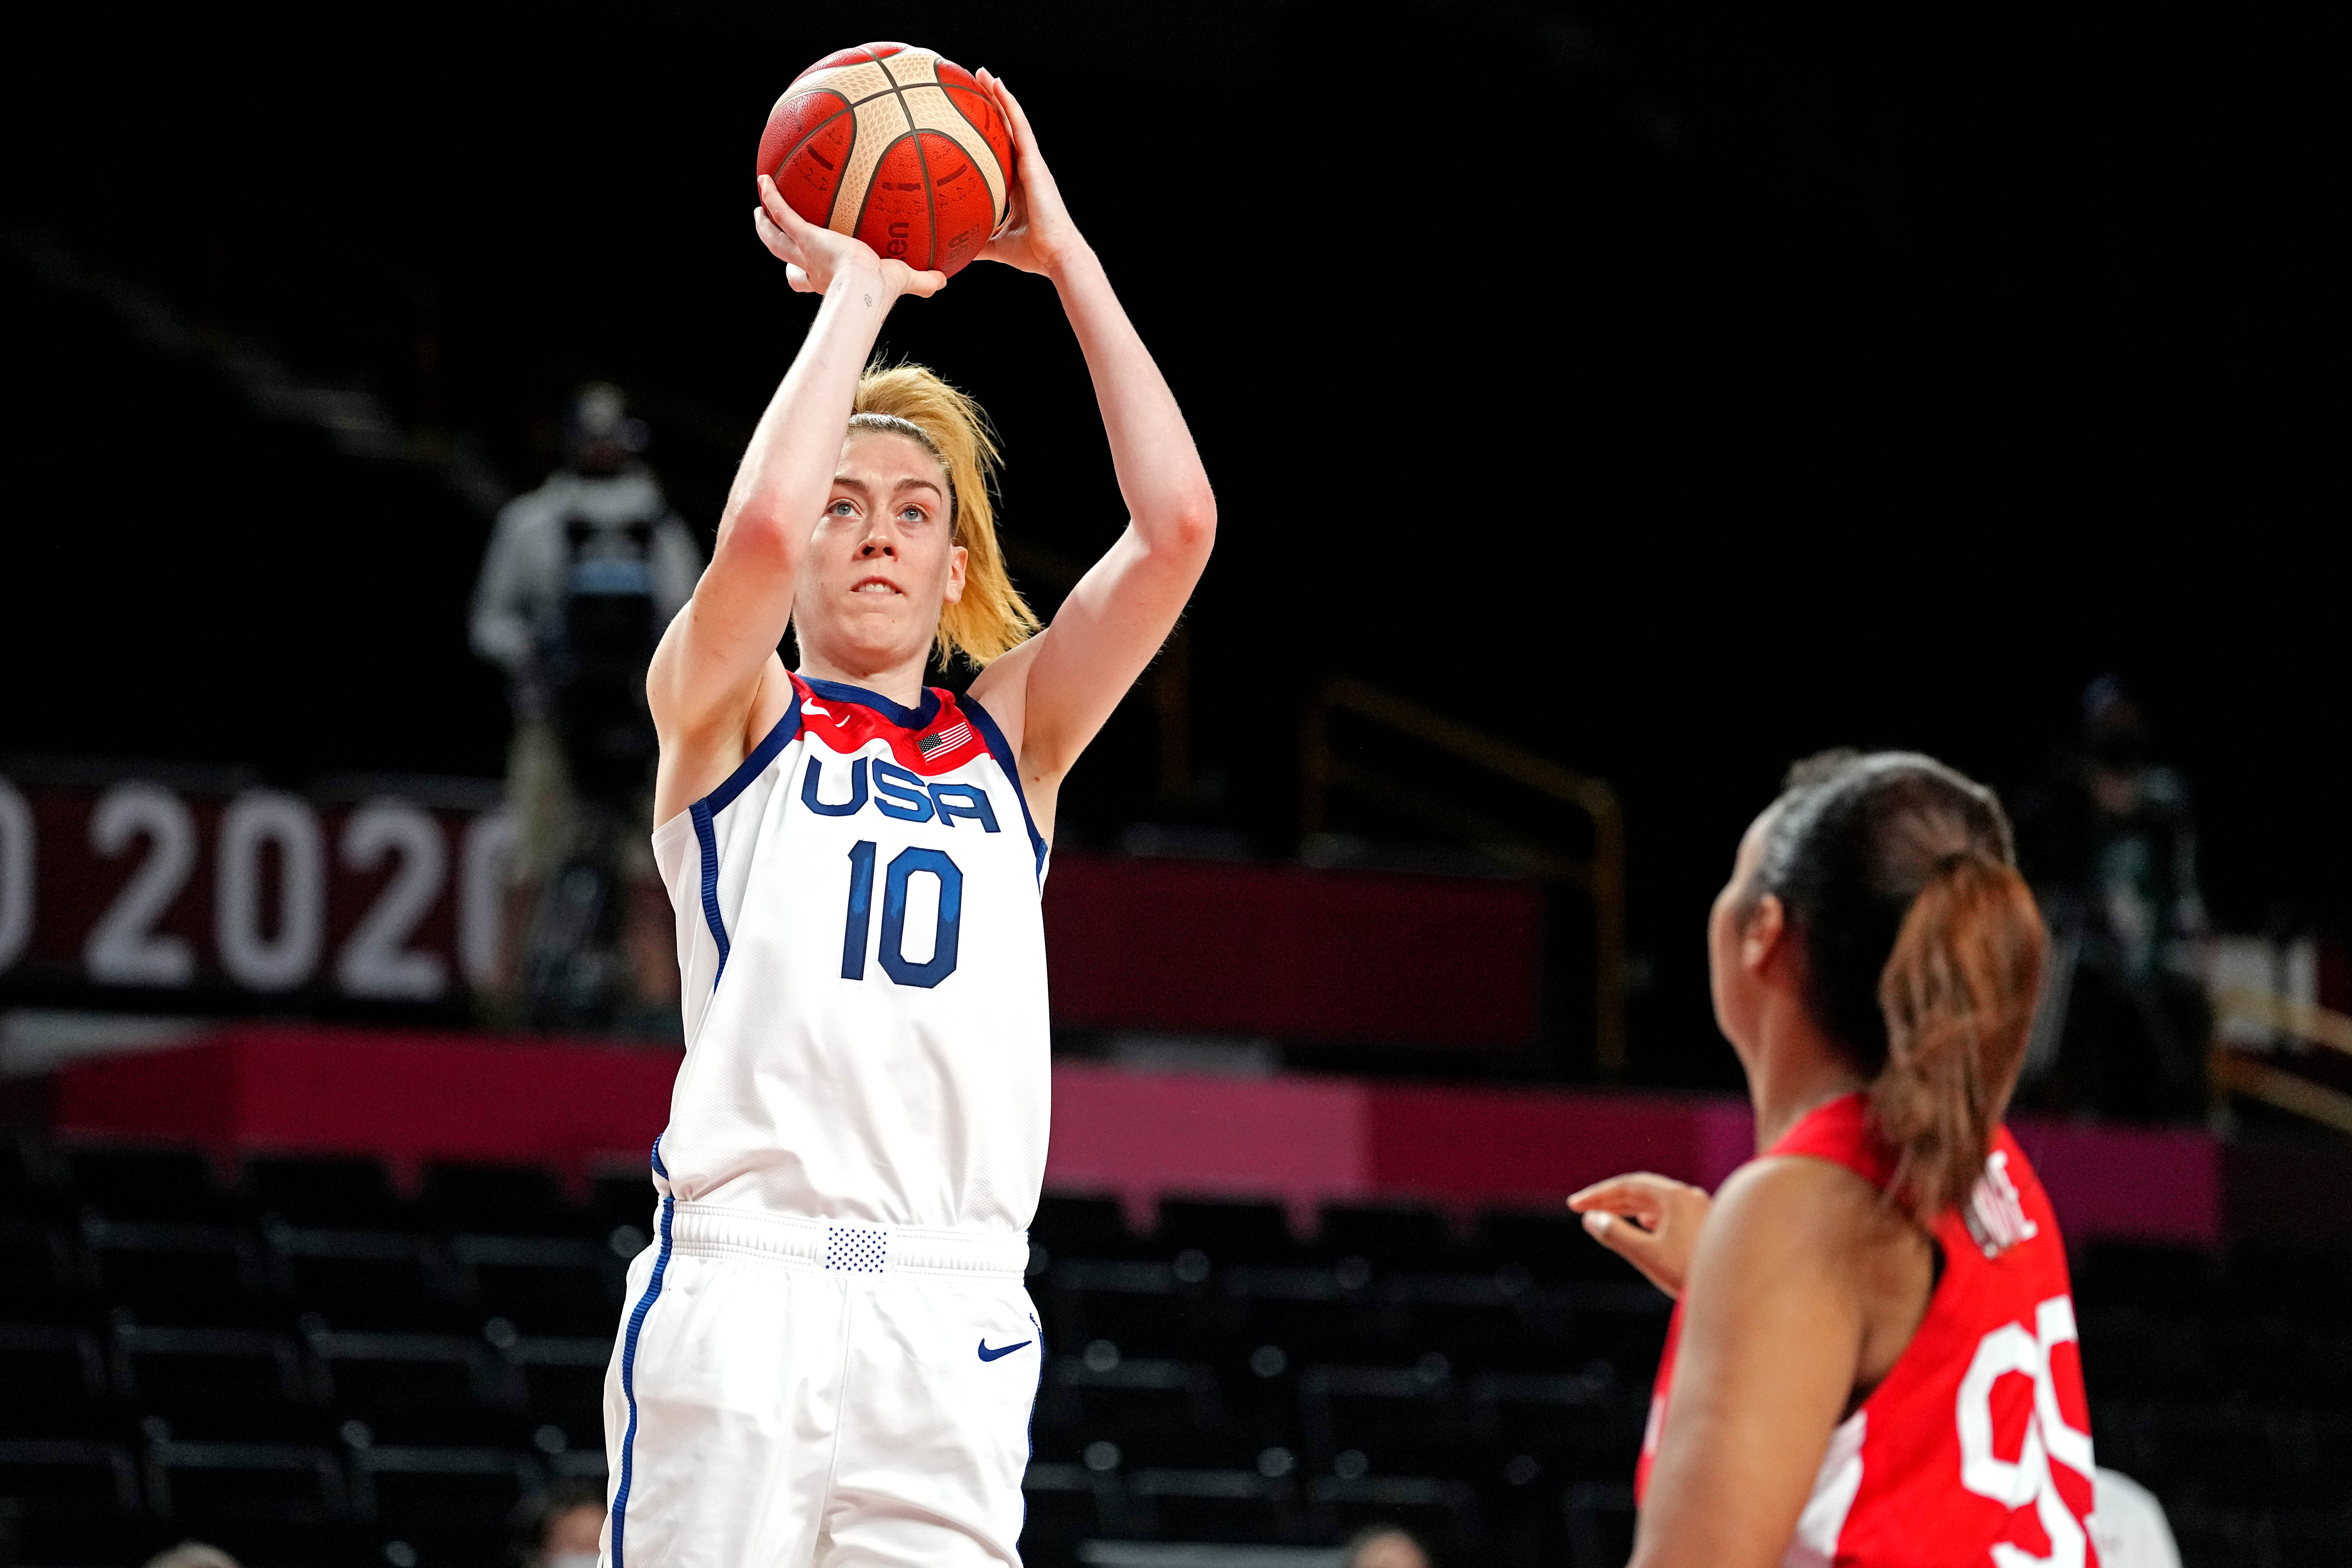 United States forward Breanna Stewart shoots the ball against Japan power forward Monica Okoye in women's basketball Group B play during the Tokyo 2020 Olympic Summer Games at Saitama Super Arena.